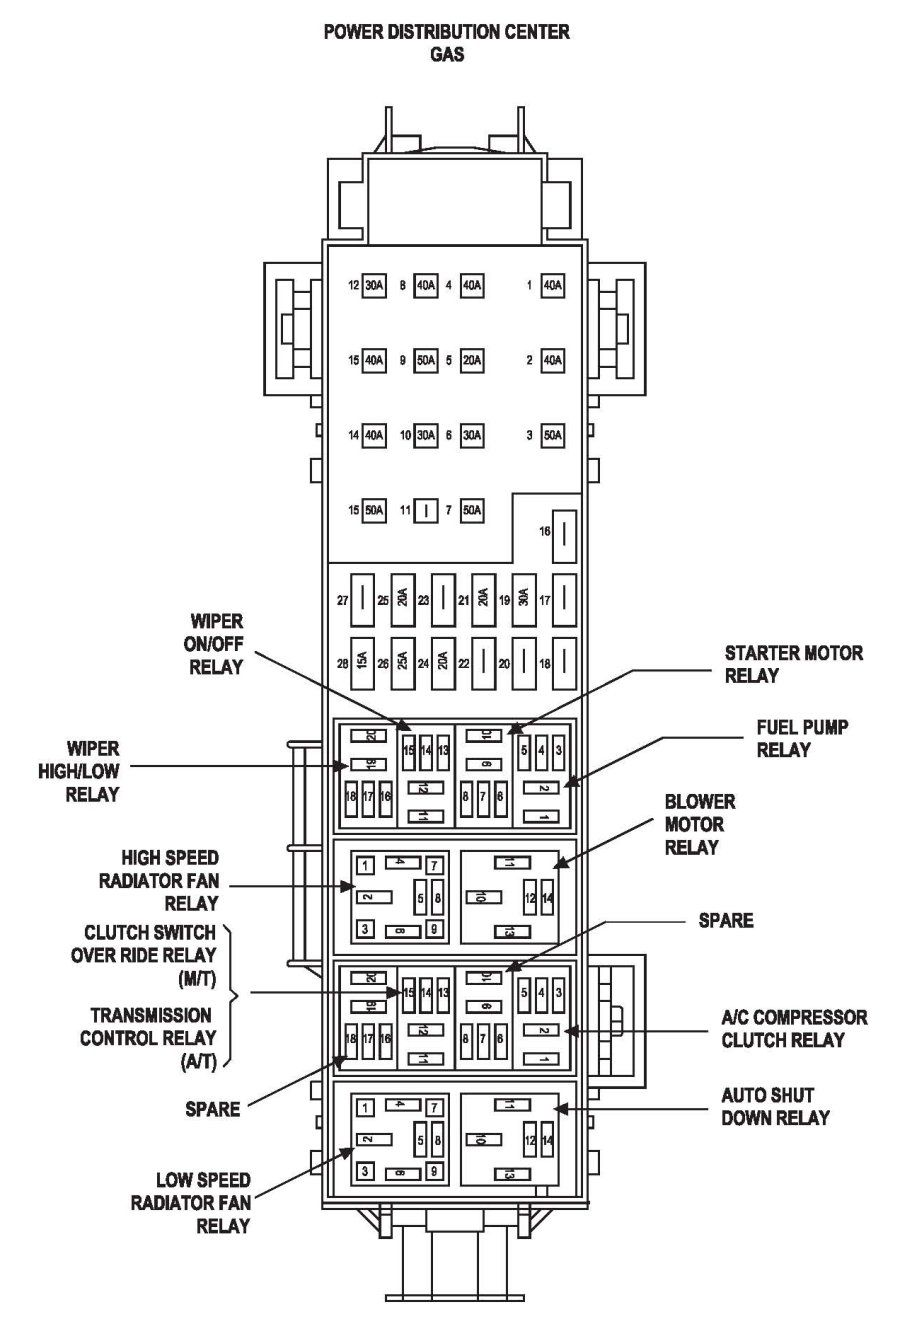 b3536c3739783eb19f827744cc42c3c4 jeep liberty fuse box diagram image details jeep liberty 2007 jeep grand cherokee interior fuse box diagram at virtualis.co